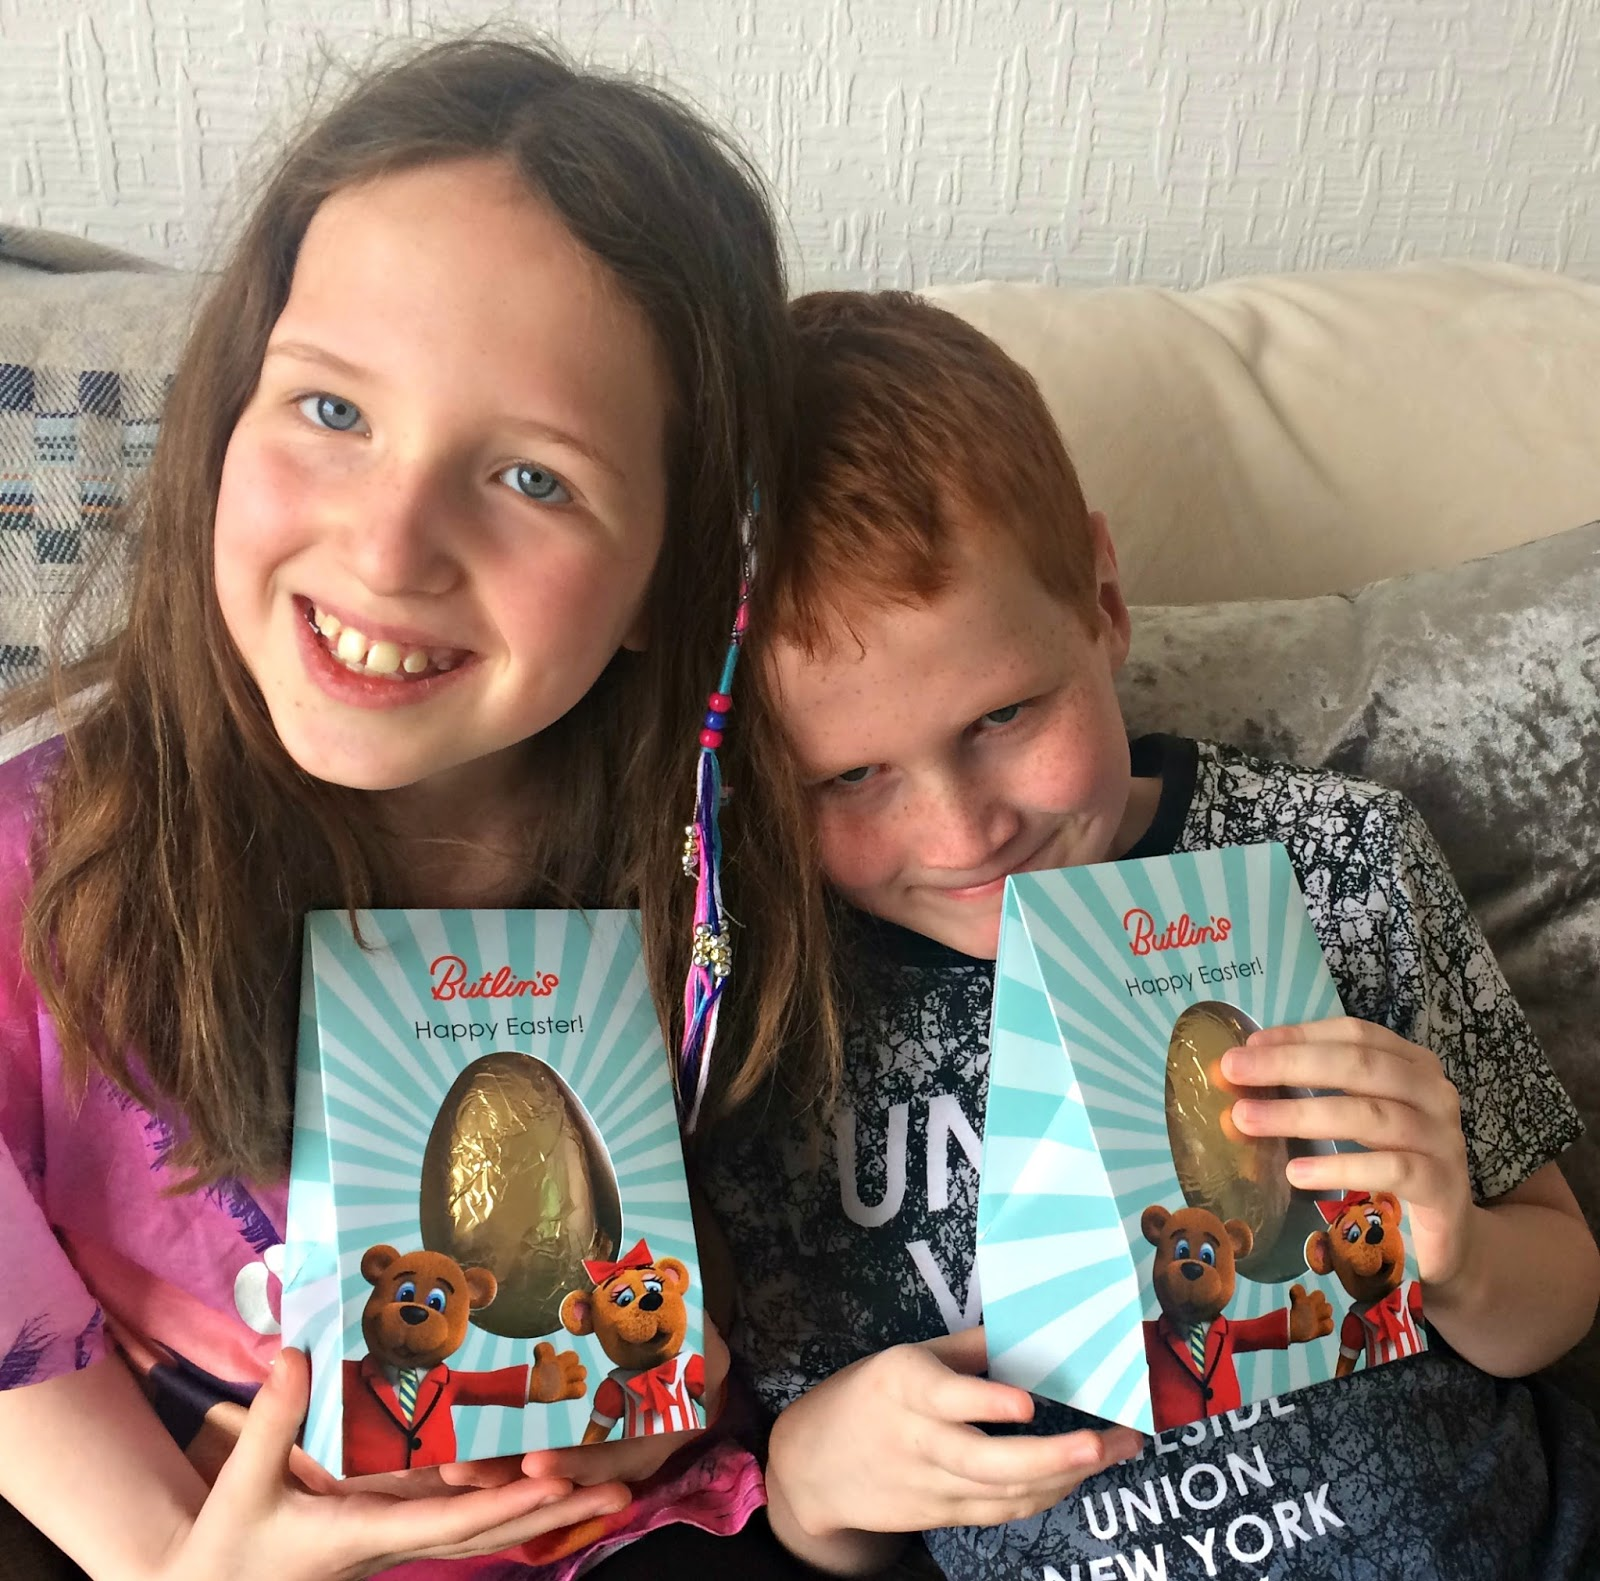 Caitlin & Ieuan with Butlins Easter Eggs